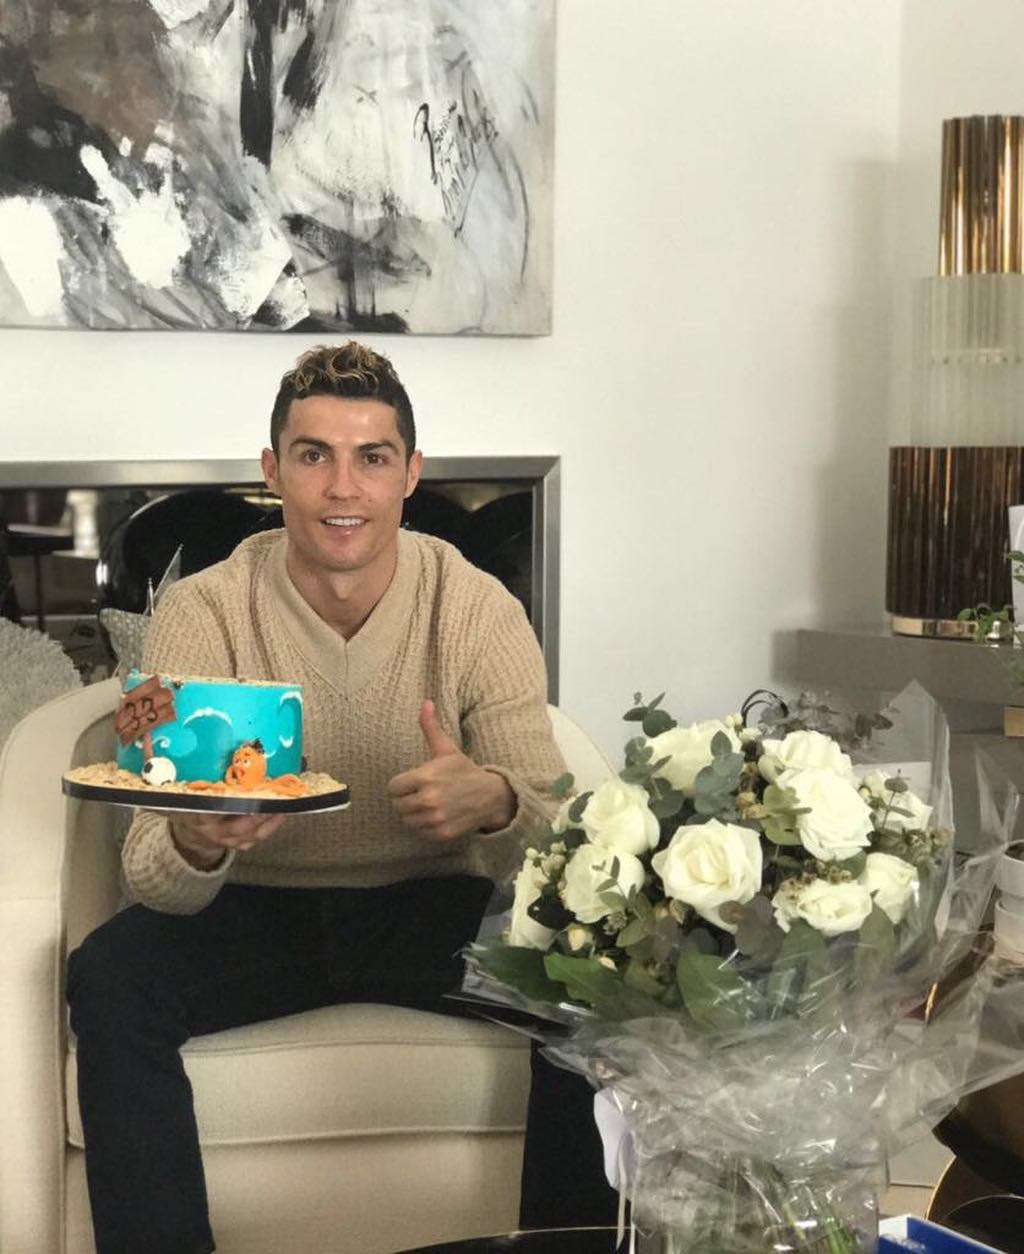 Cristiano Ronaldo Celebrates His 33rd Birthday Showing His Cake (picture)